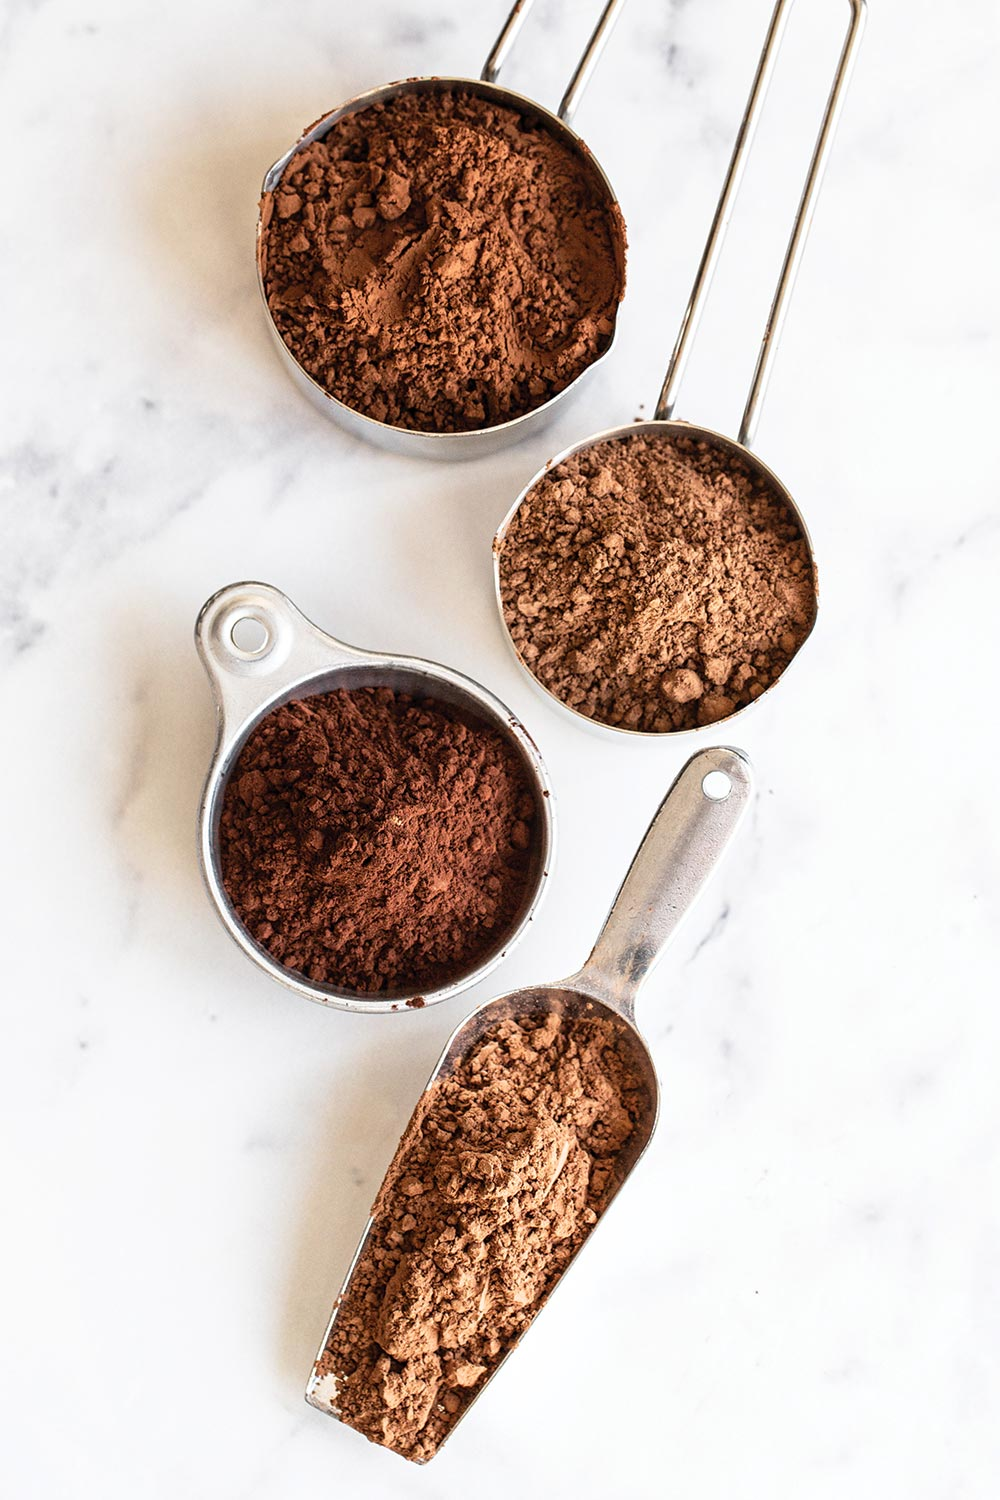 cocoa powder and dutch processed cocoa powder in measuring cups